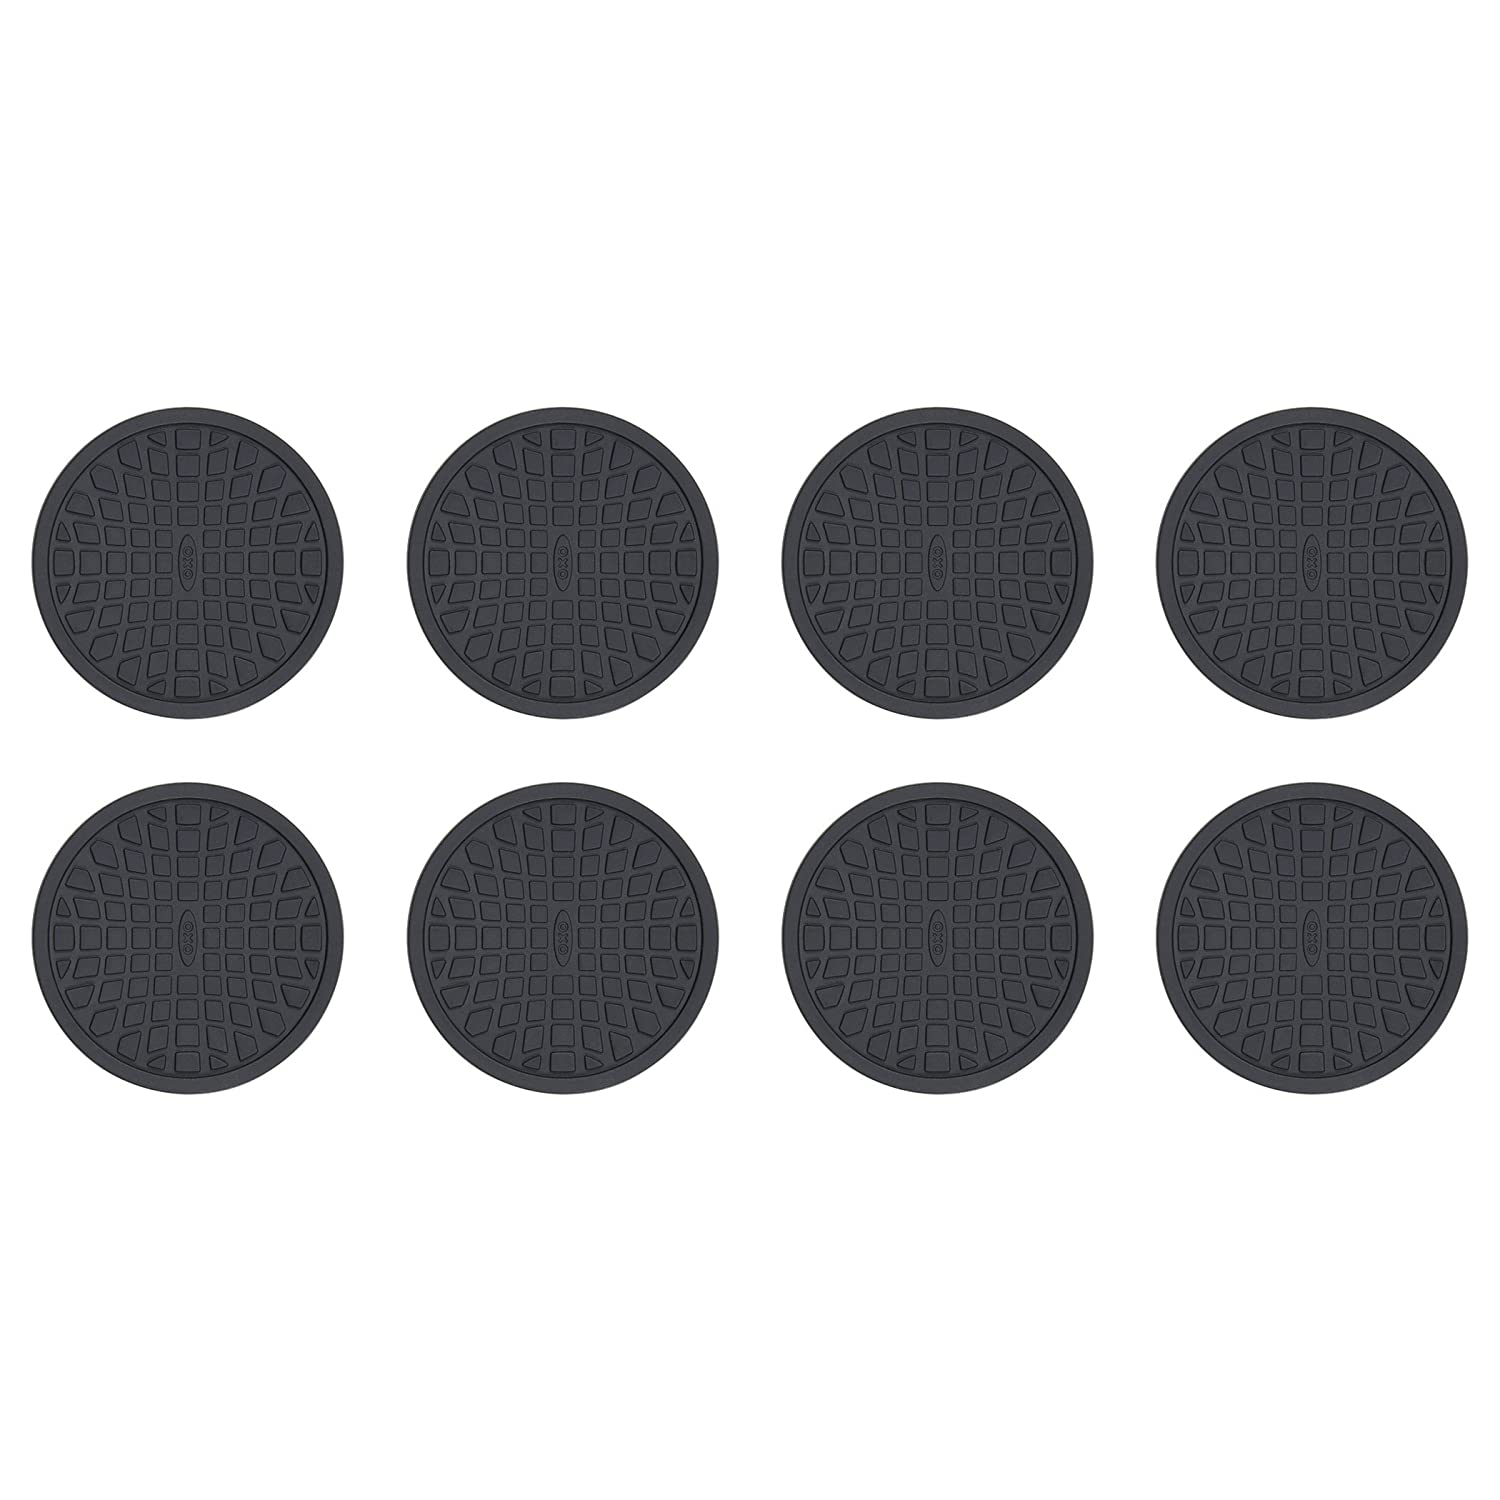 OXO Good Grips Silicone Coasters - 8 Pack Oxo International 1180501